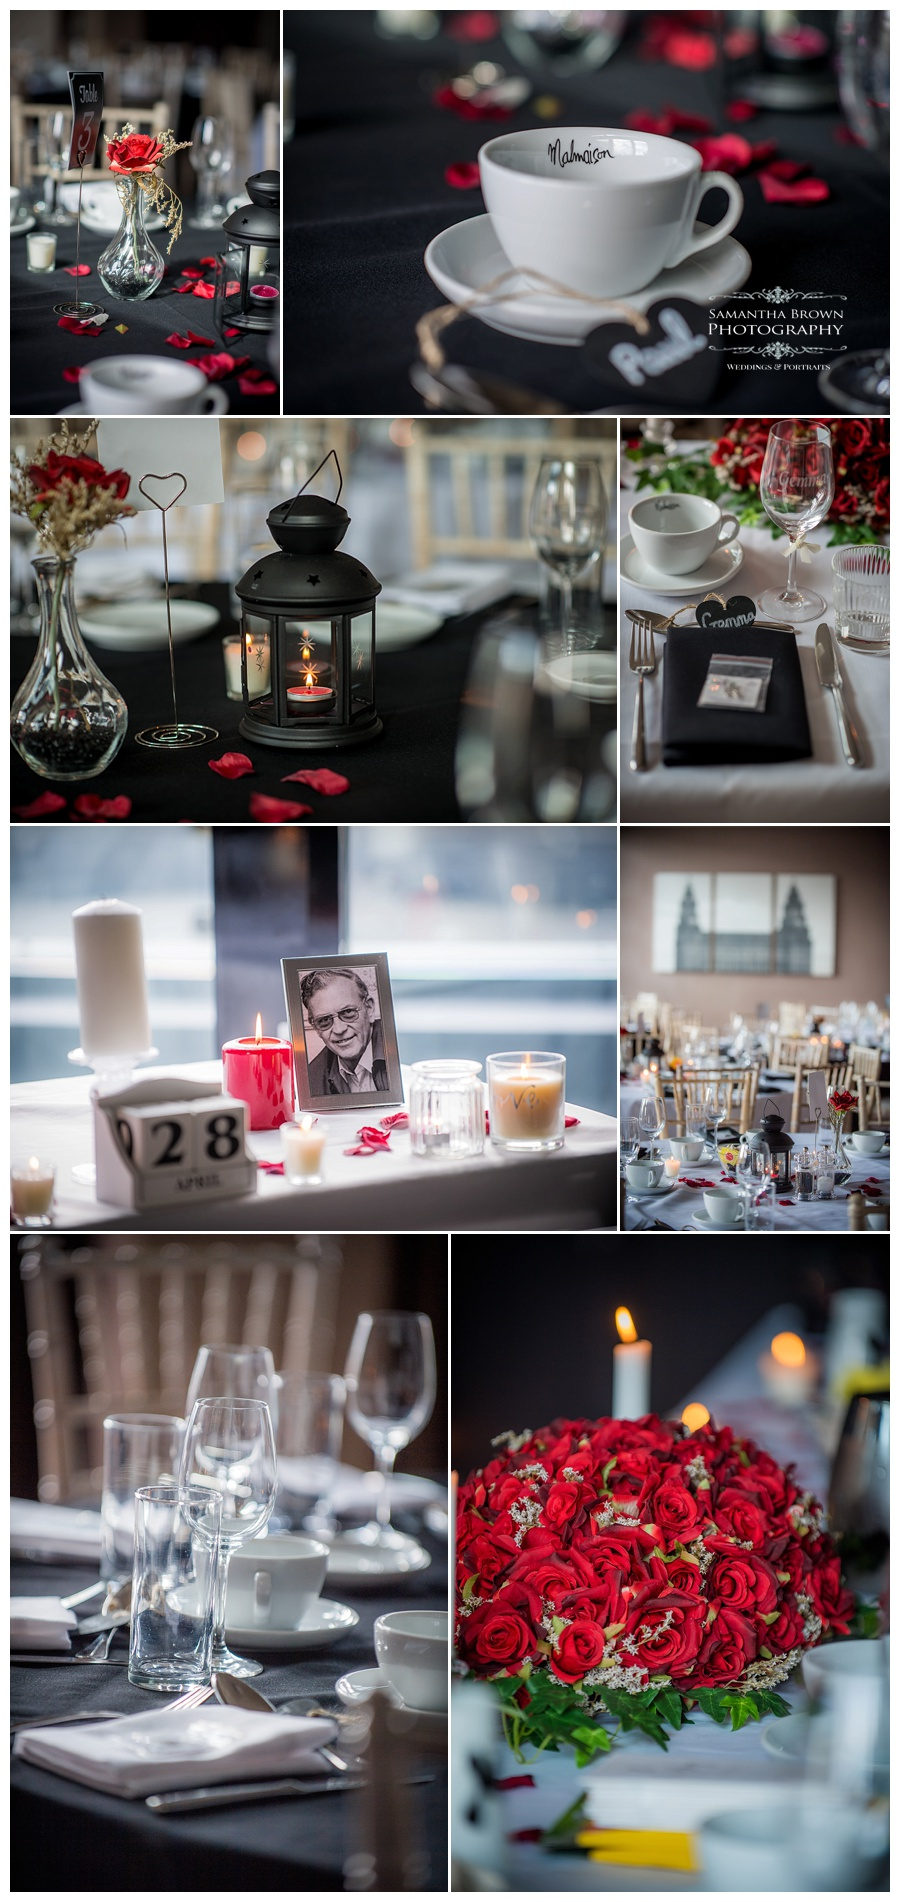 wedding table details at Malmaison Liverpool